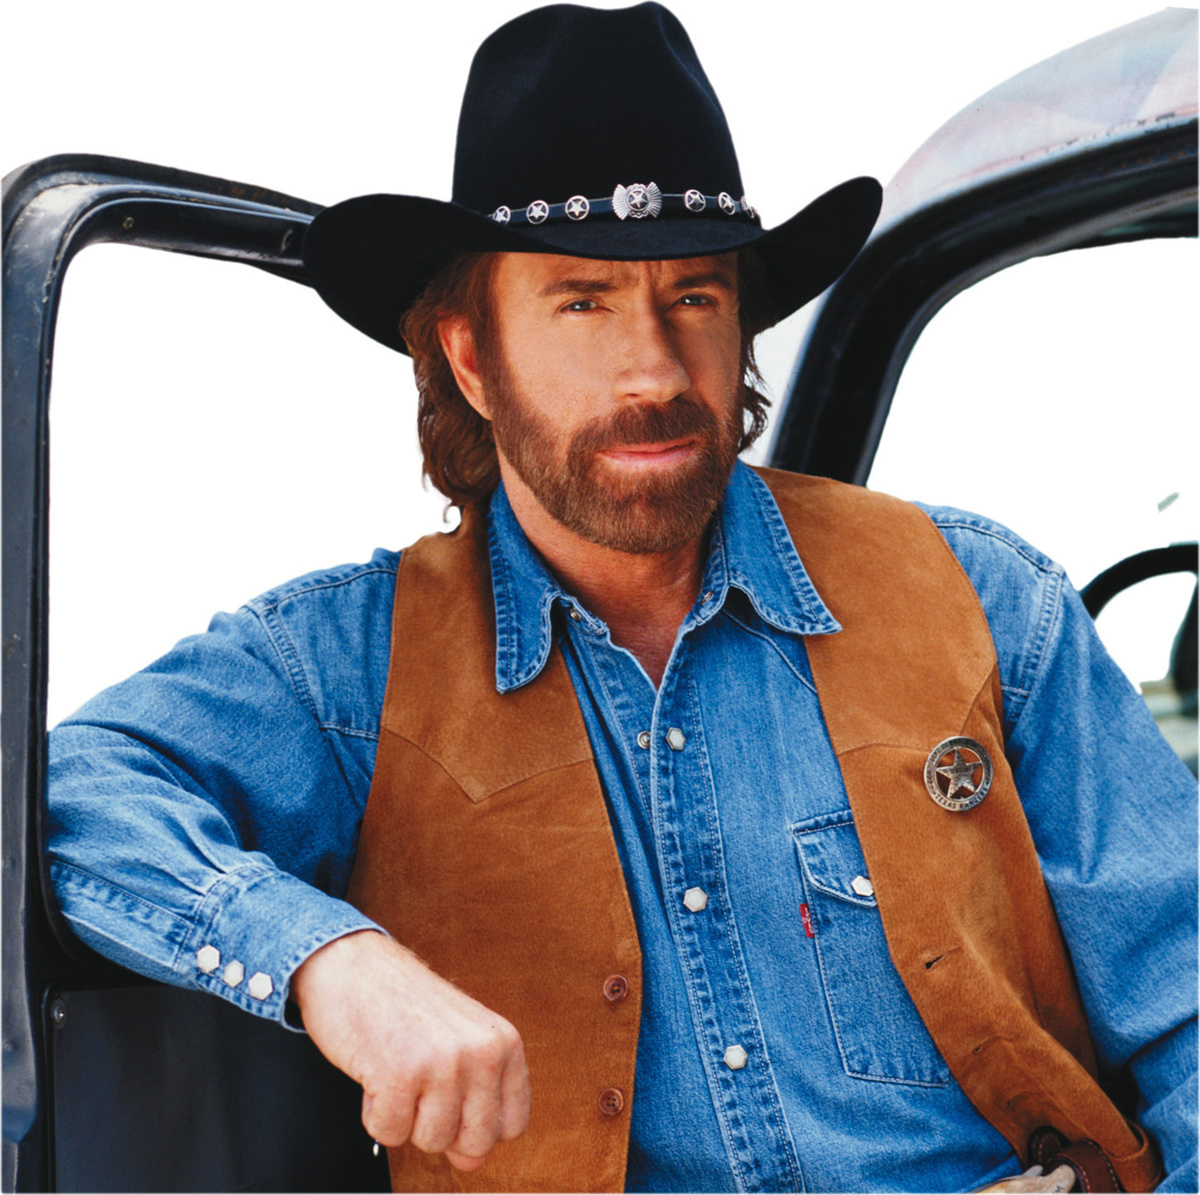 walker texas ranger was almost canceled after one episode